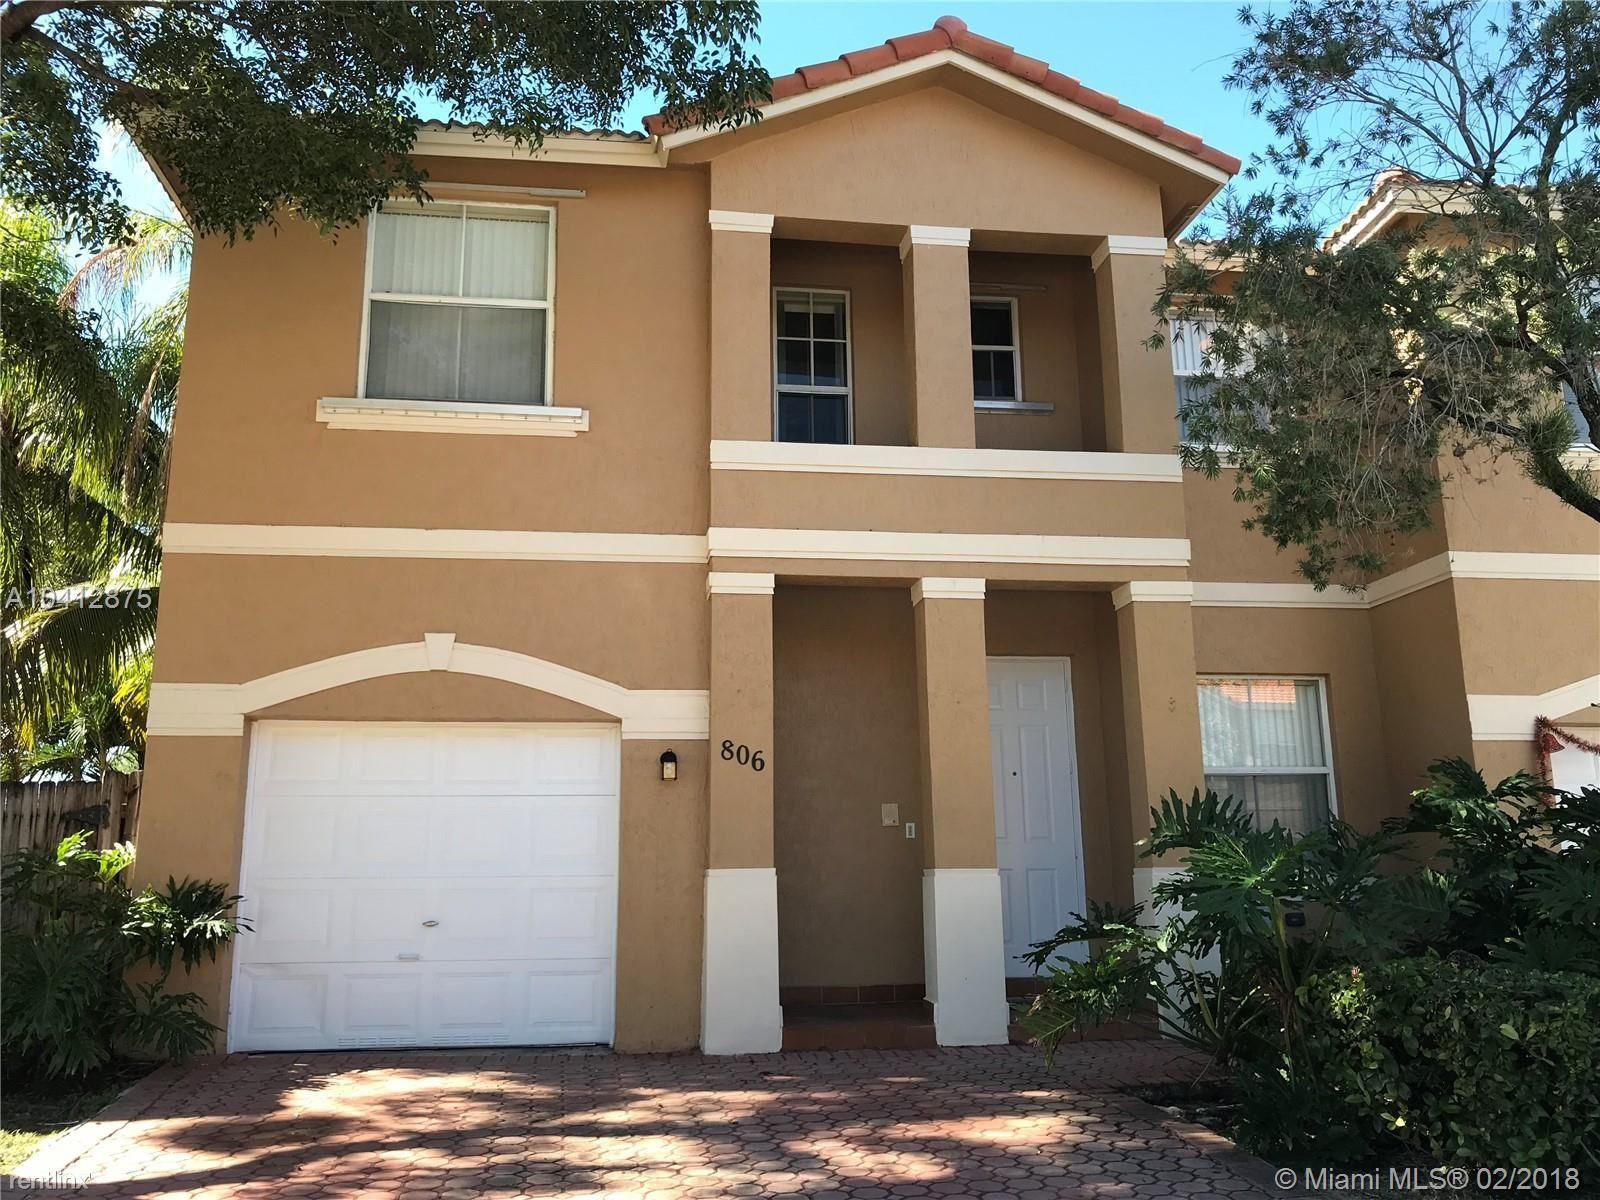 806 NW 135th Ter For Rent - Pembroke Pines, FL   Trulia